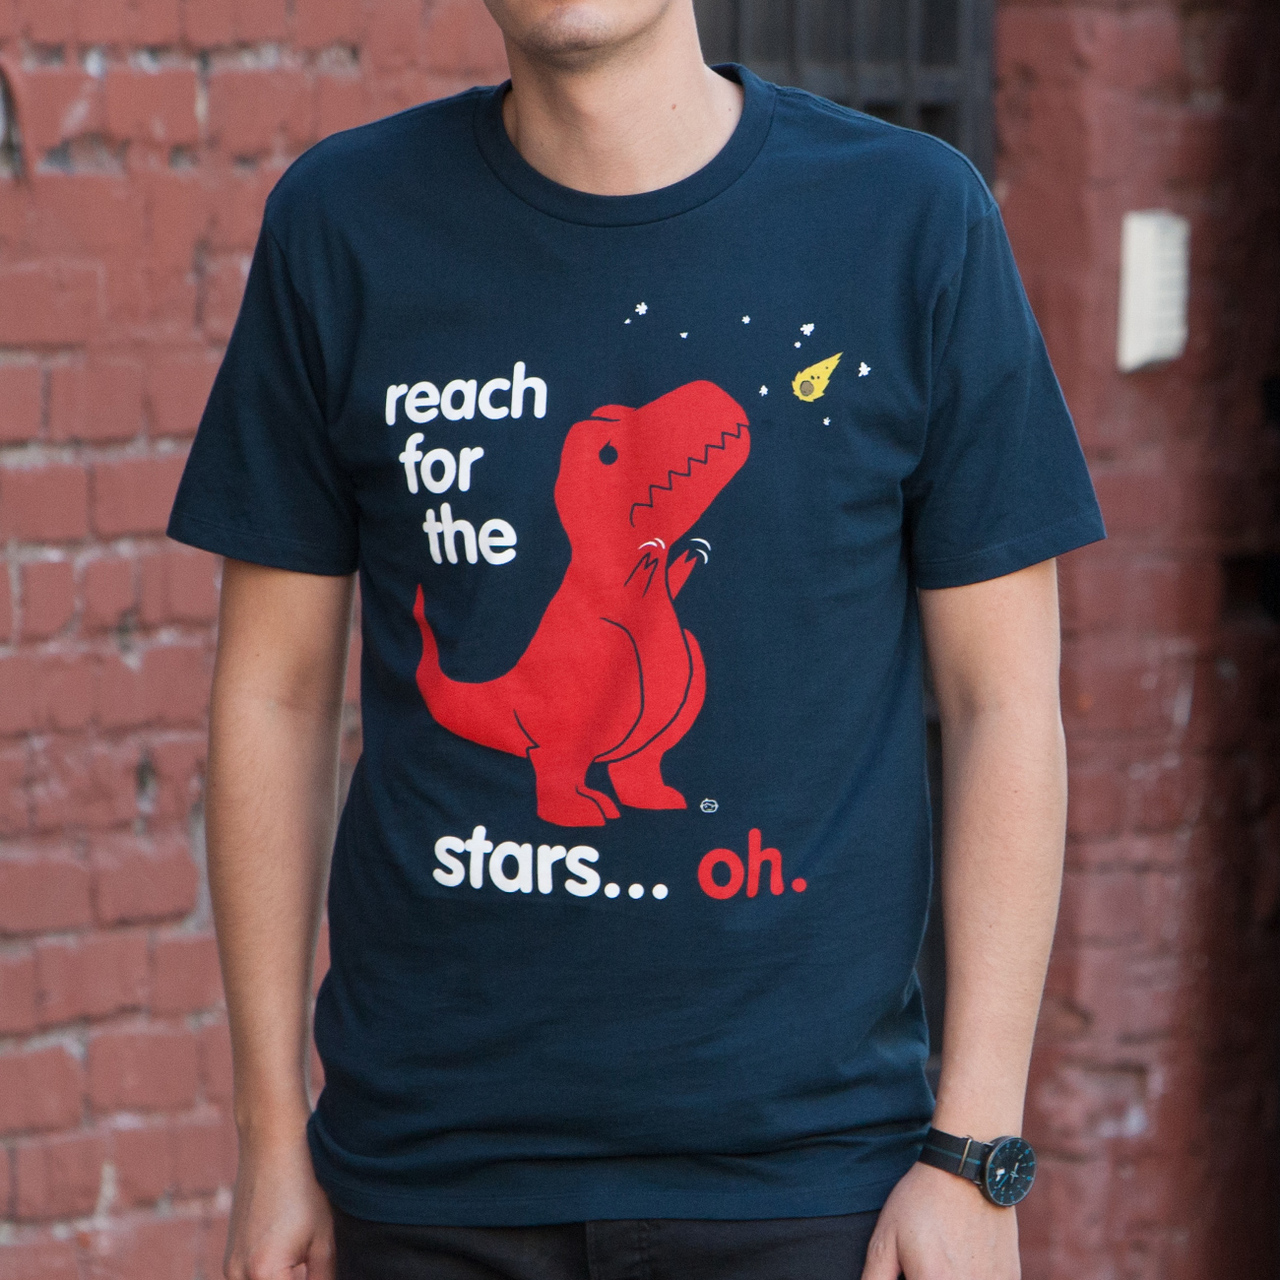 acfcd7f98 Reach For The Stars Men's T-Shirt – Sad T-Rex Dinosaur T Shirt, Funny  Dinosaur Shirt, This Funny Dinosaur / T Rex has Short Arms! - Goodie Two  Sleeves